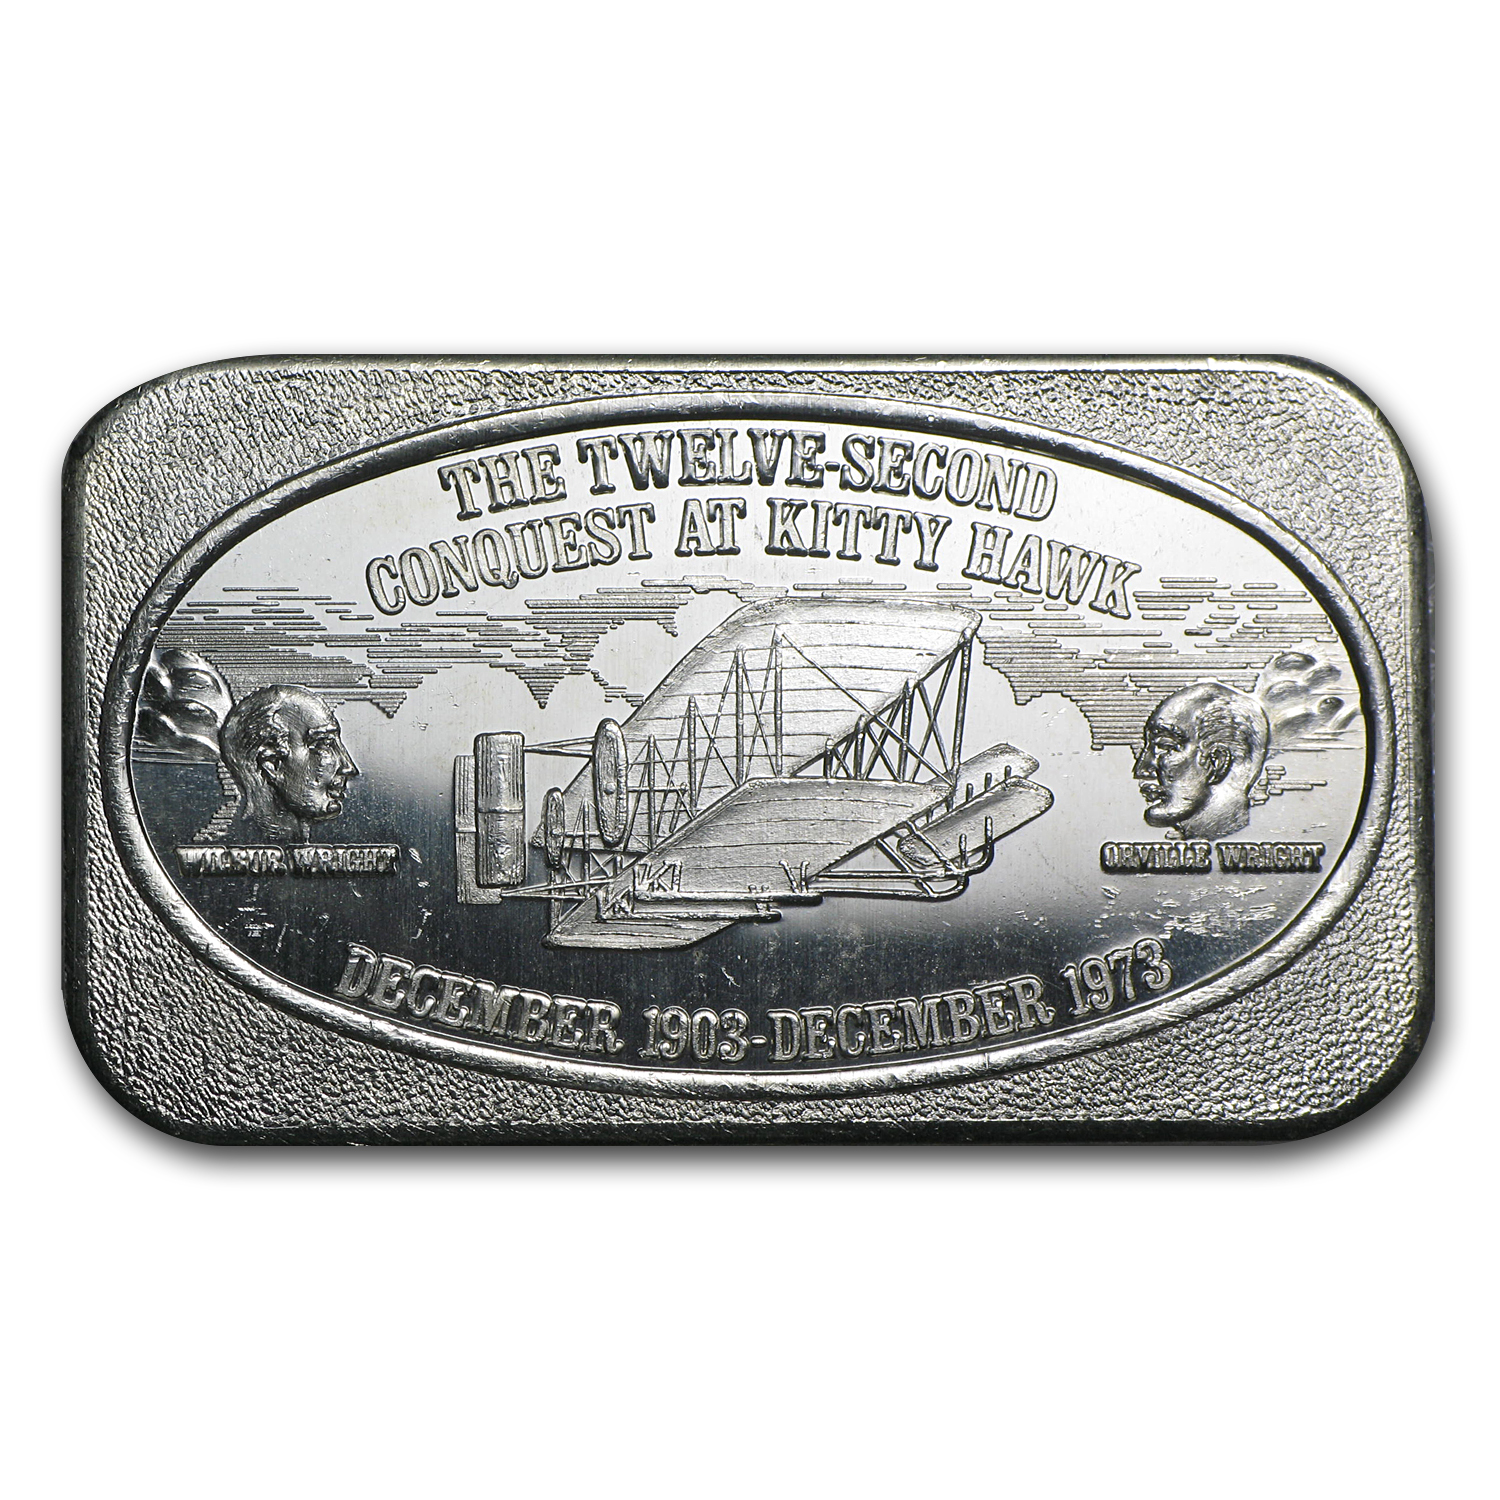 1 oz Silver Bars - Conquest at Kitty Hawk